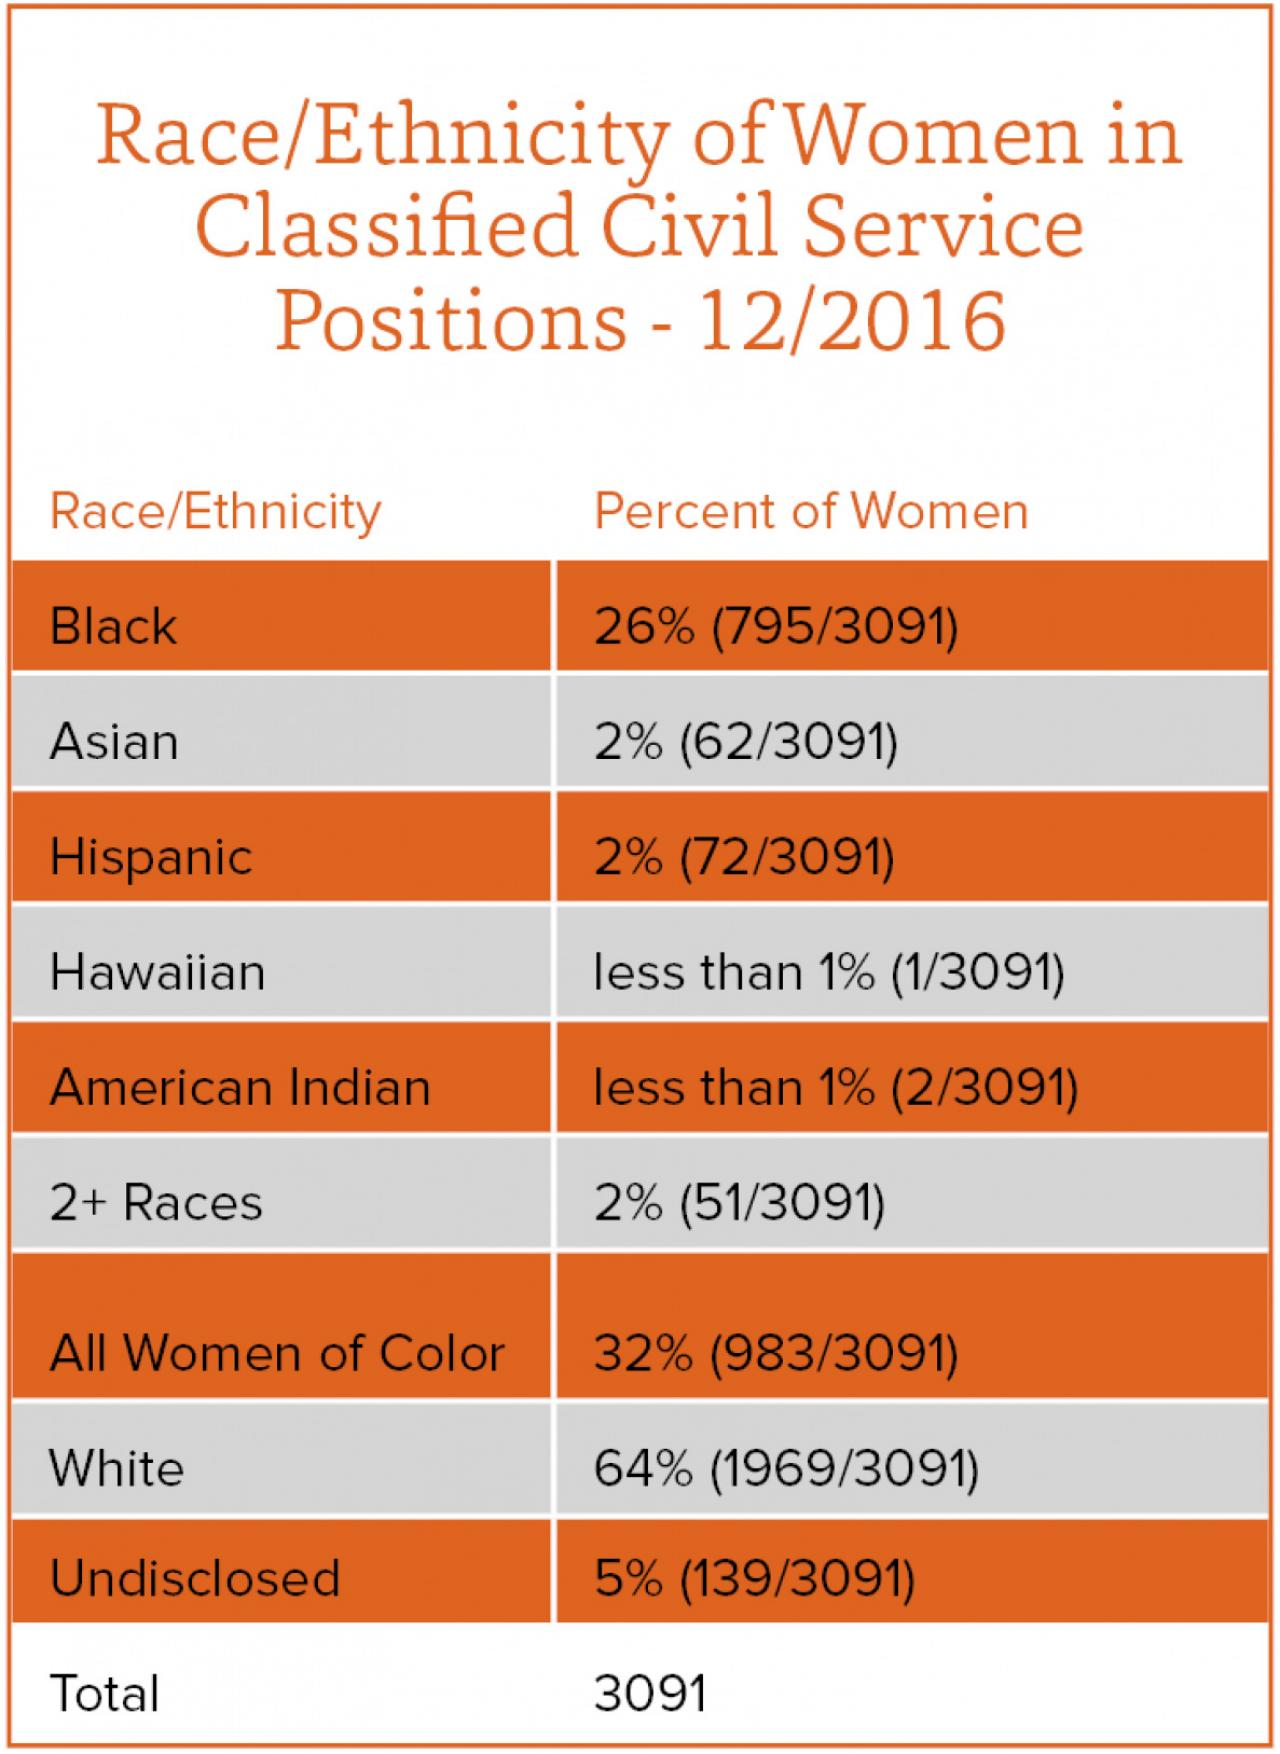 Race ethnicity of women in classified civil service positions